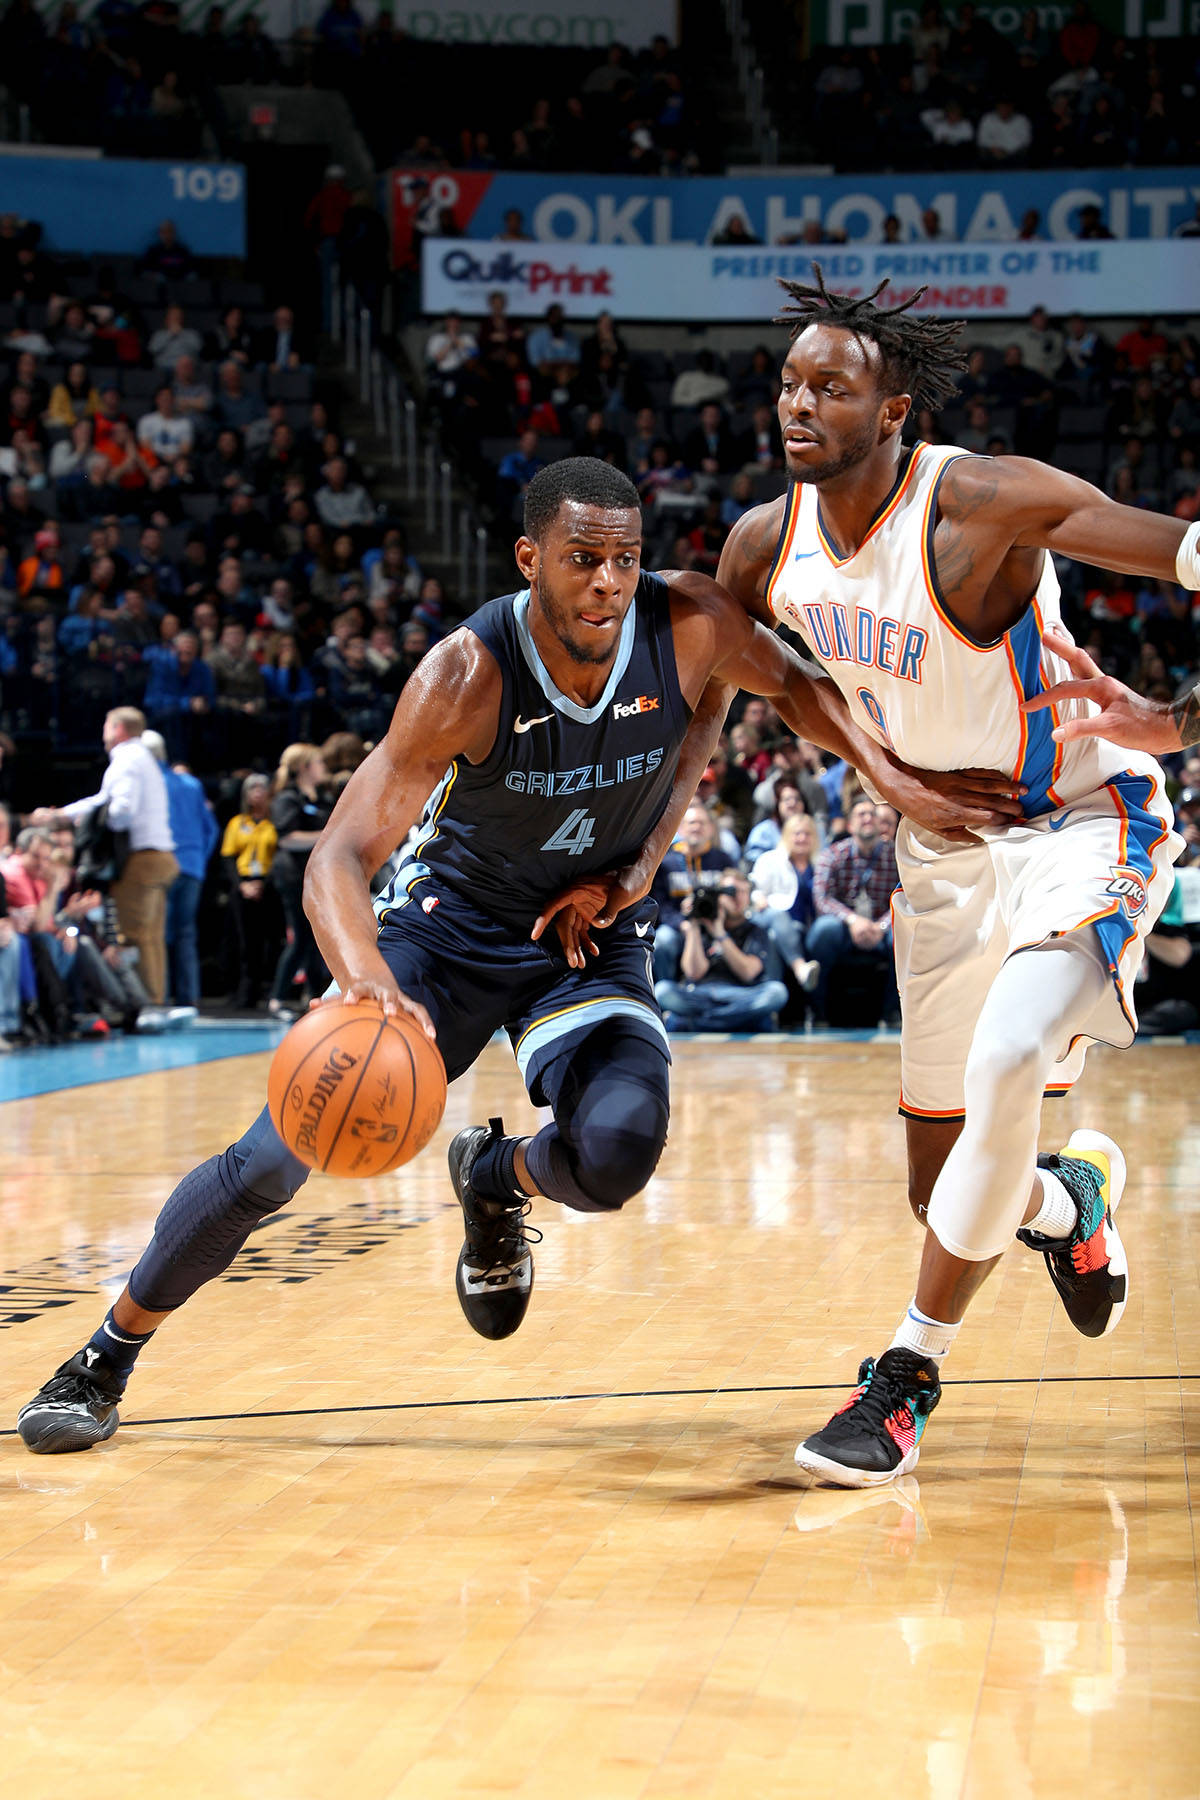 Former Memphis Grizzlies forward Julian Washburn has been signed by the Fraser Valley Bandits. (Photo by Zach Beeker/NBAE via Getty Images)